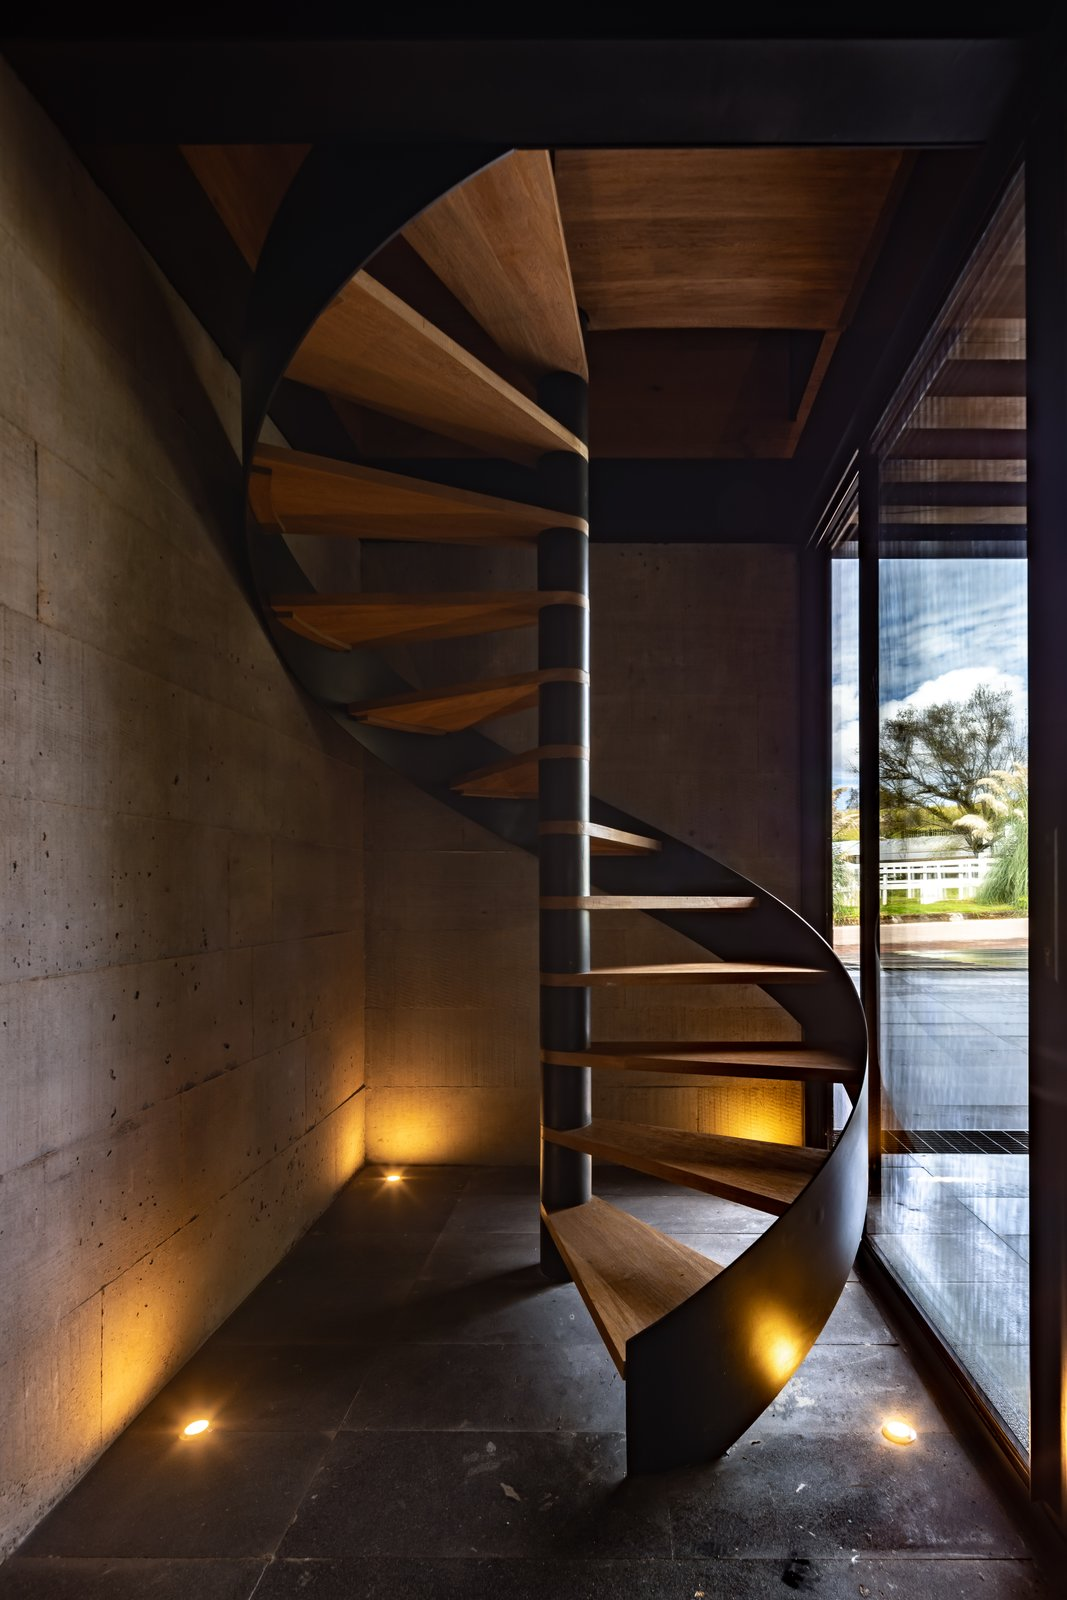 Staircase, Metal Tread, and Wood Railing  L7 Home by Augusto Fernandez